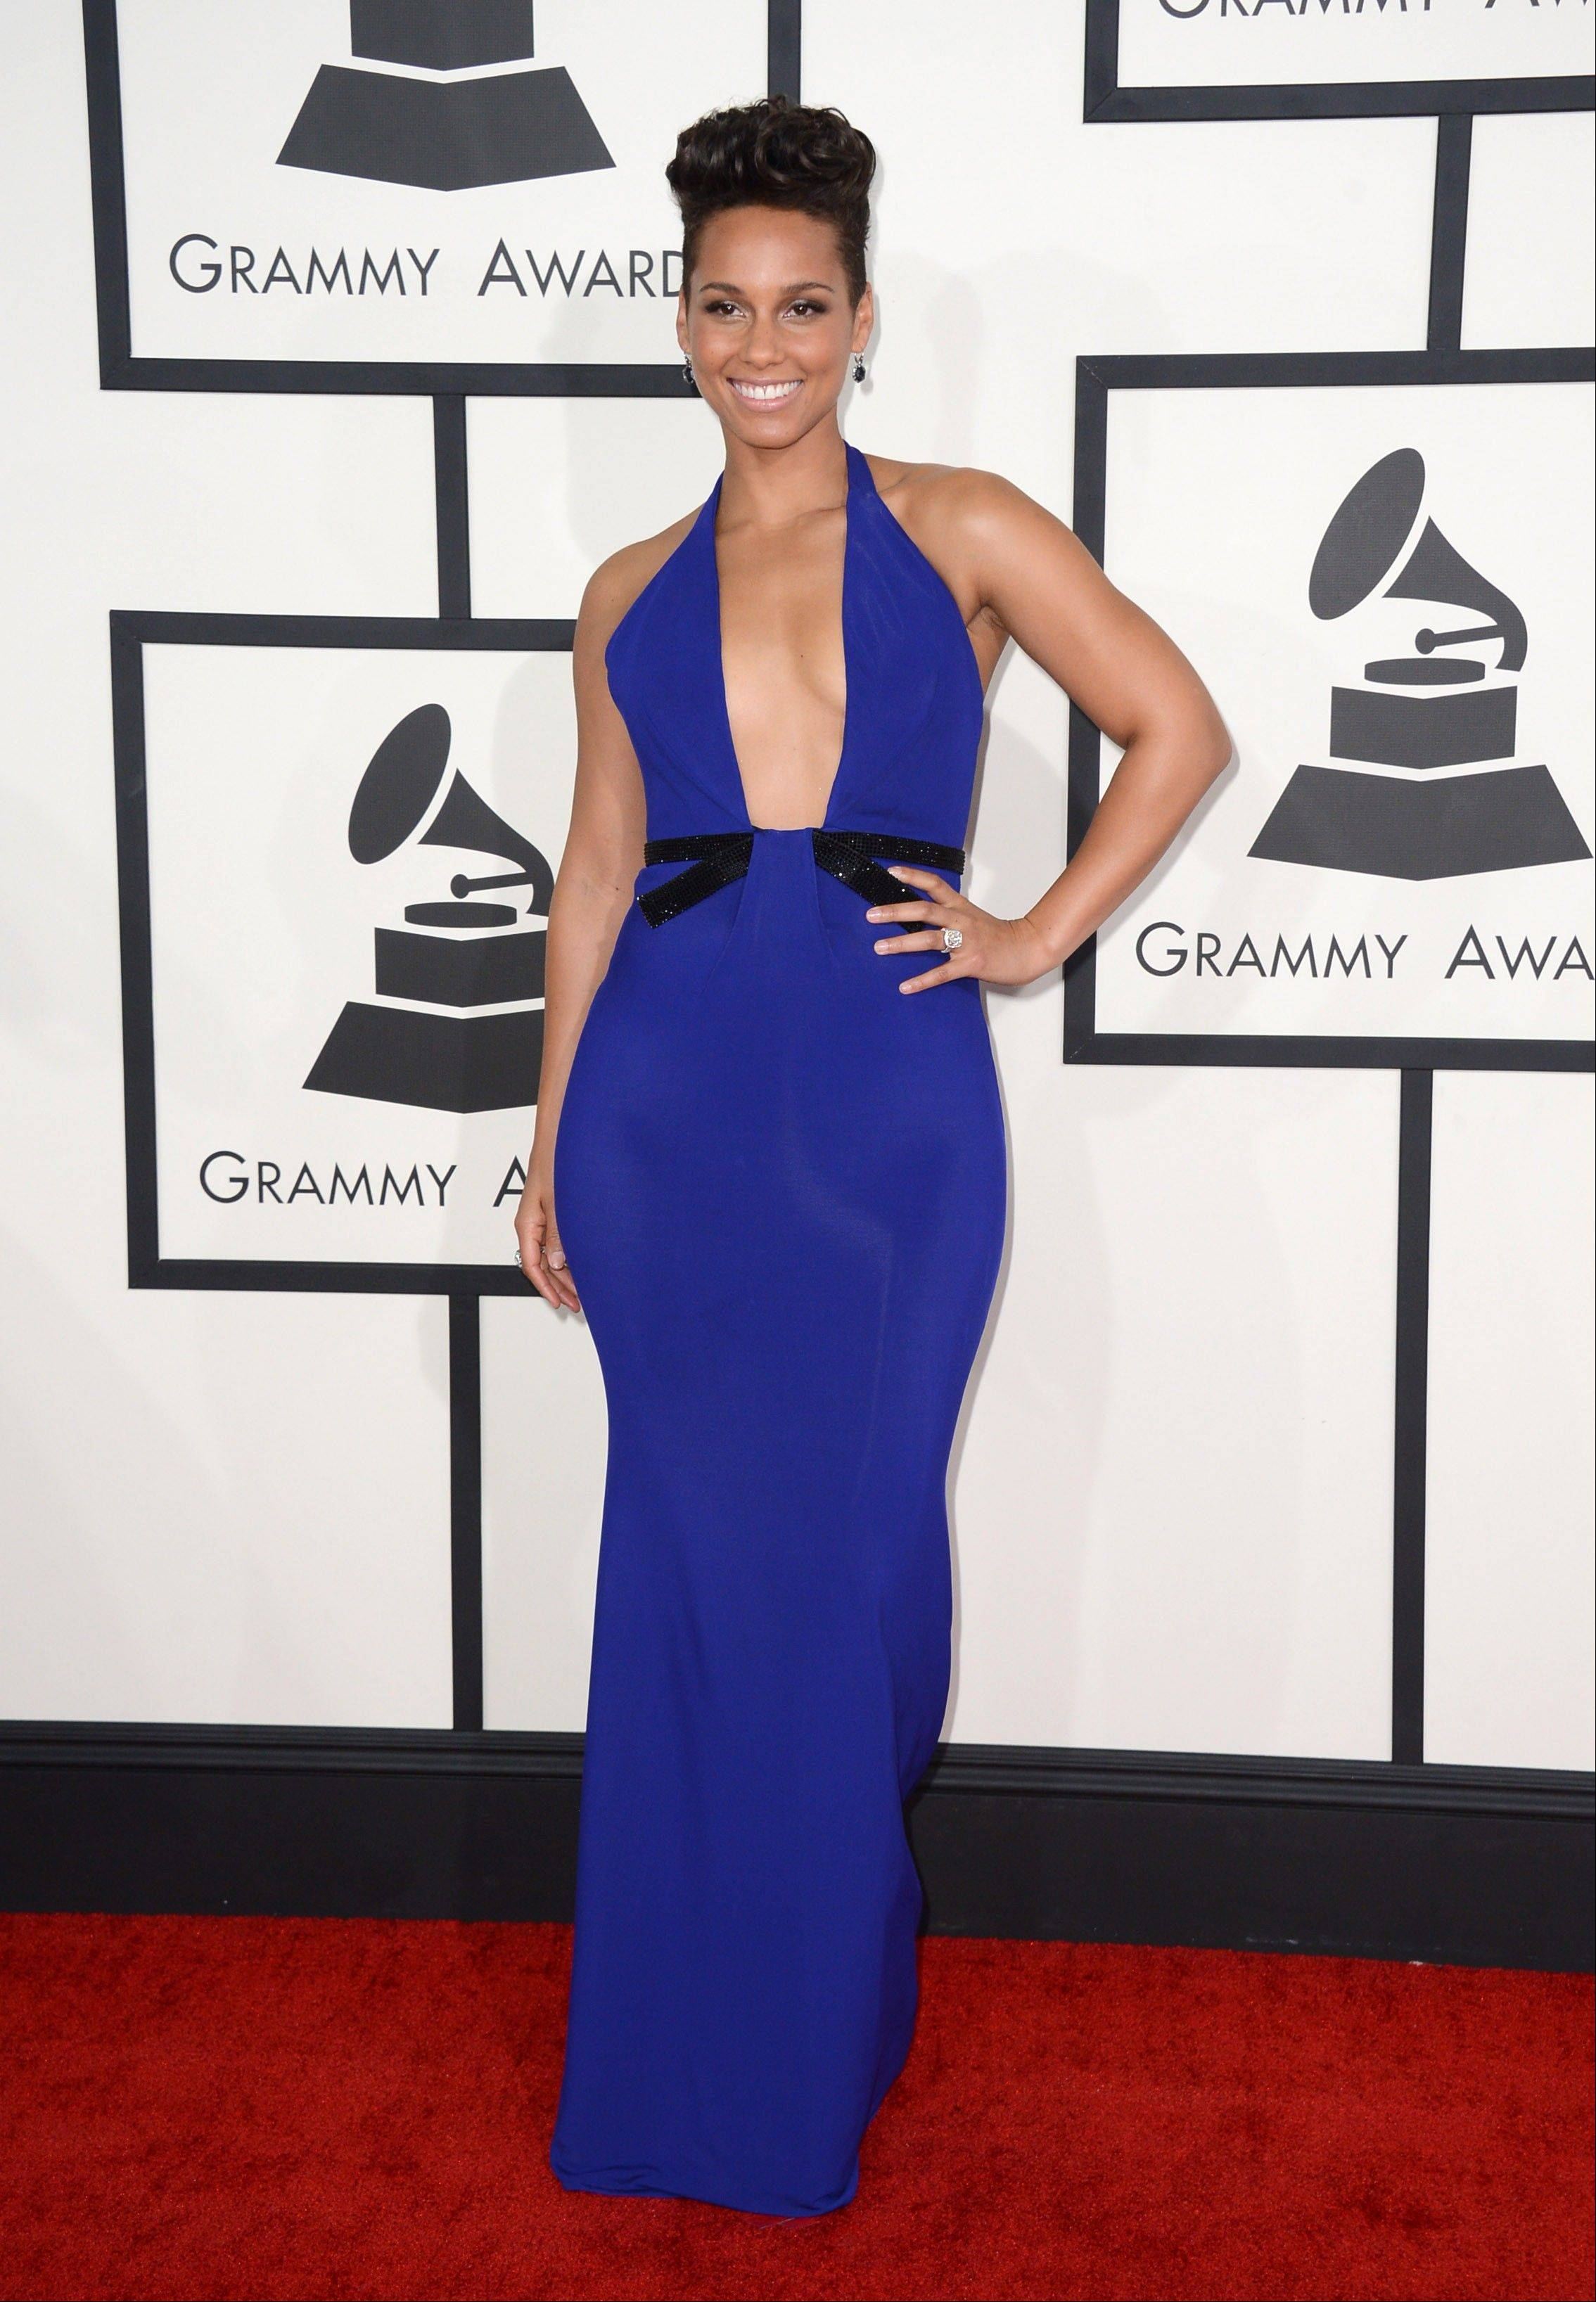 Alicia Keys arrives at the 56th annual Grammy Awards.